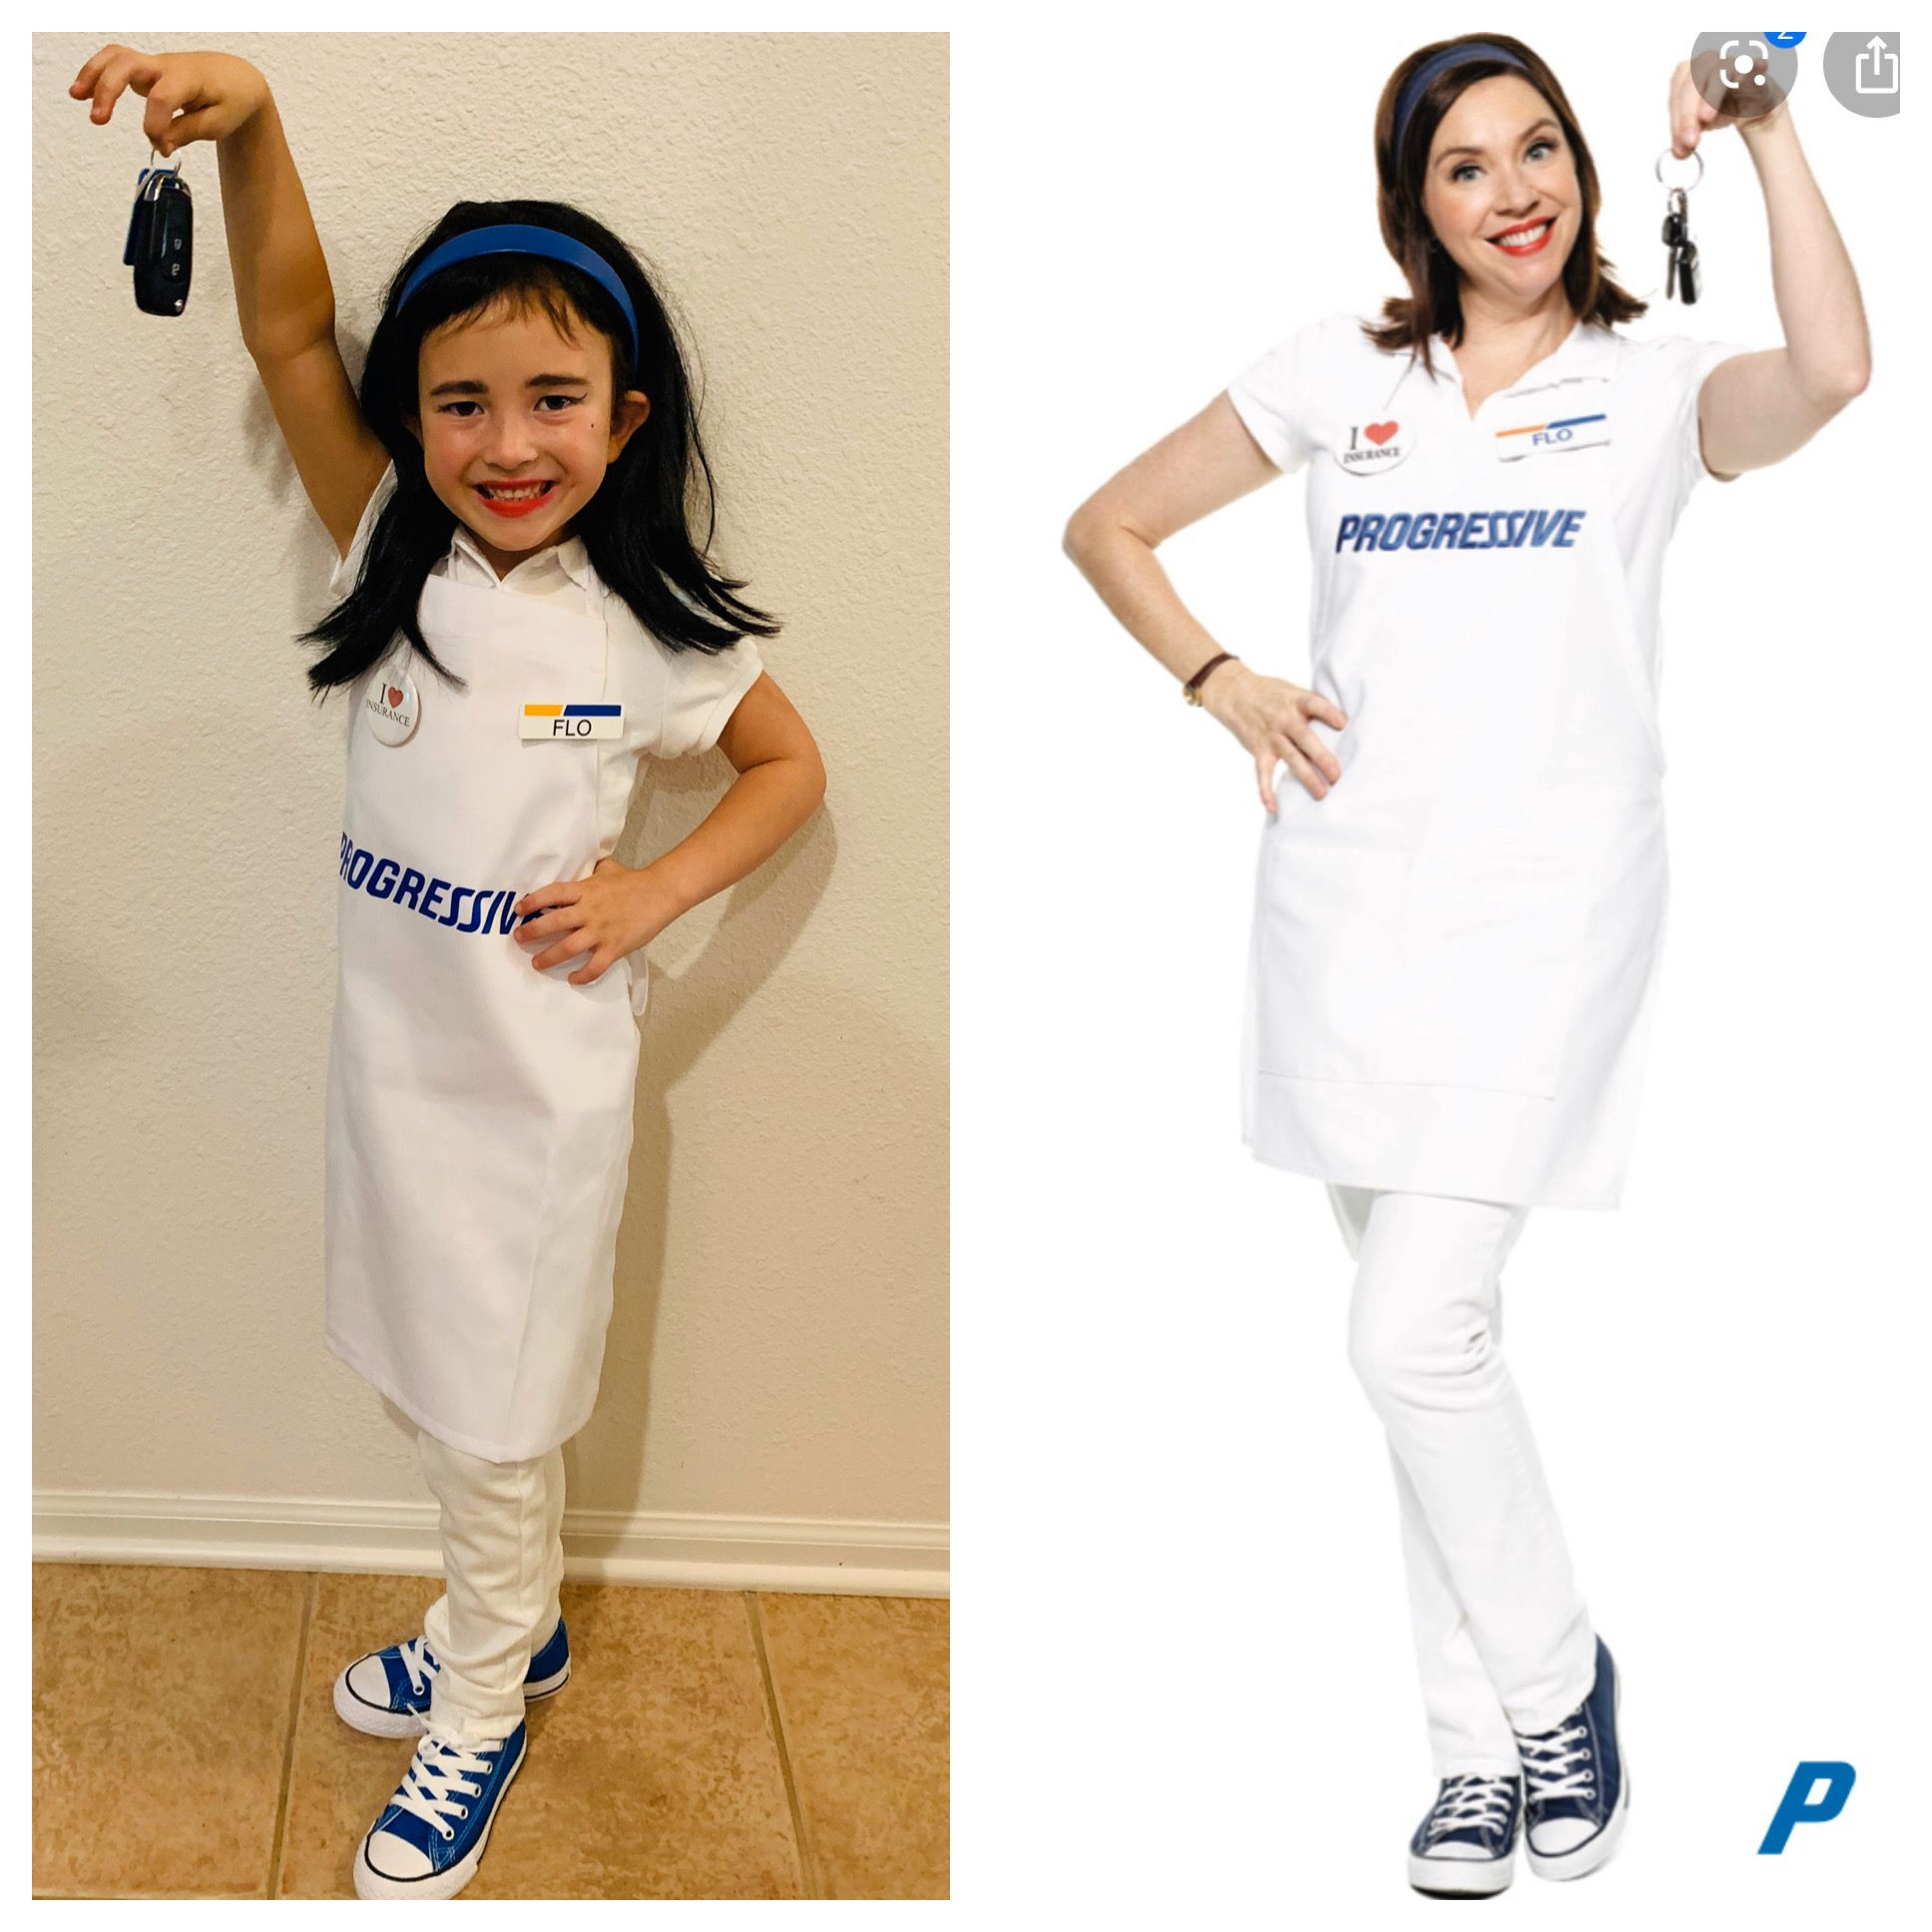 Flo progressive insurance Halloween costume kids